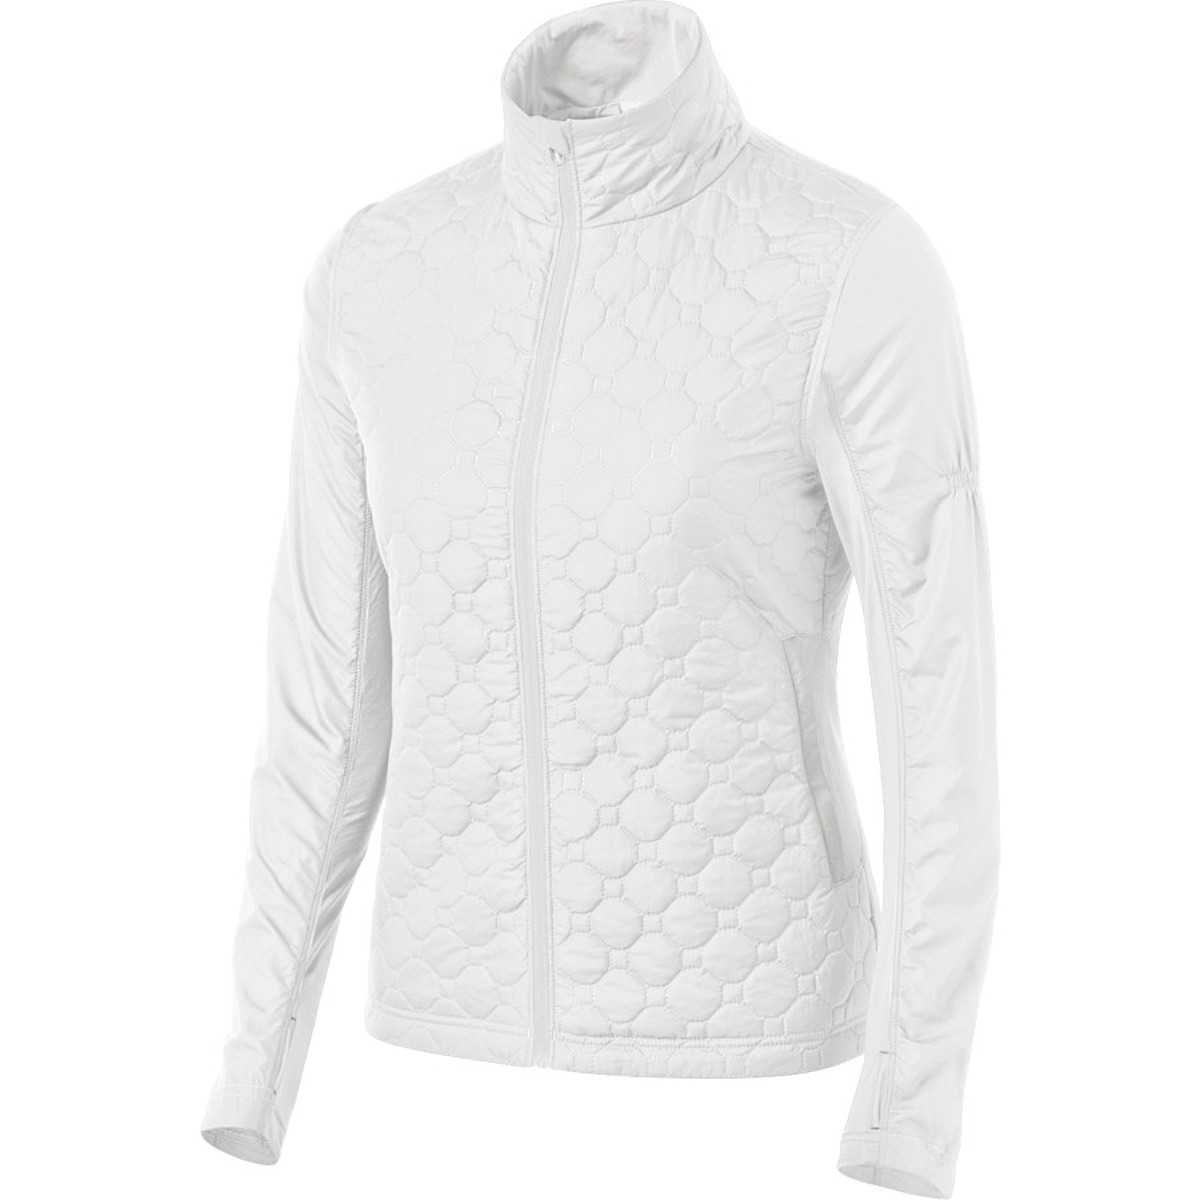 Asics Thermo Windblocker Jacket